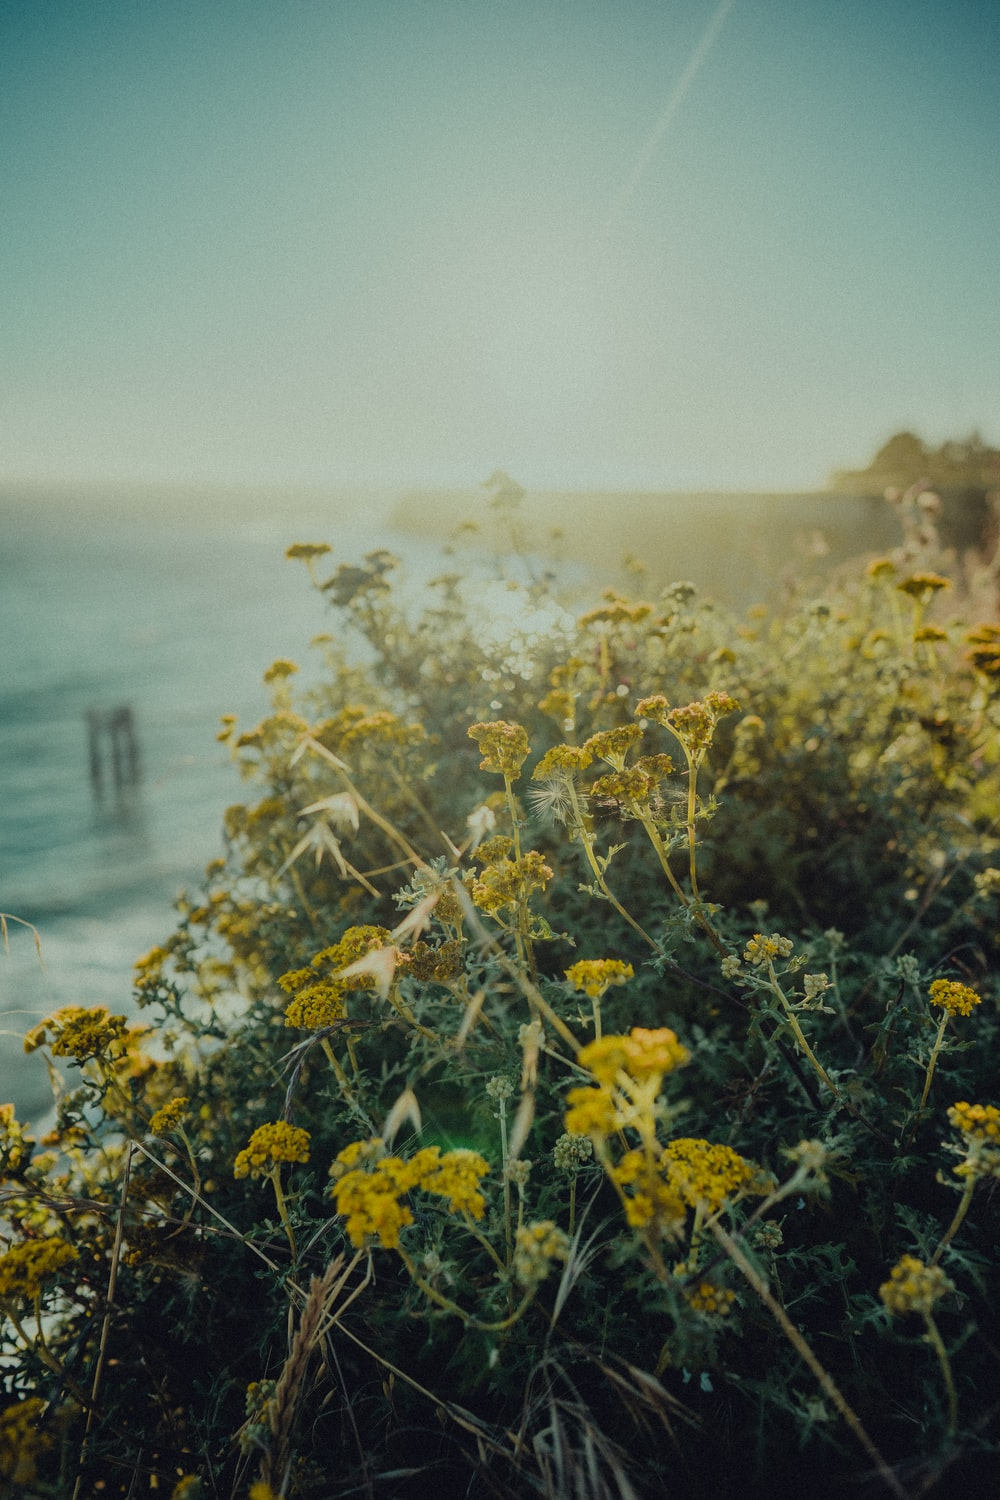 yellow flowers near body of water during daytime